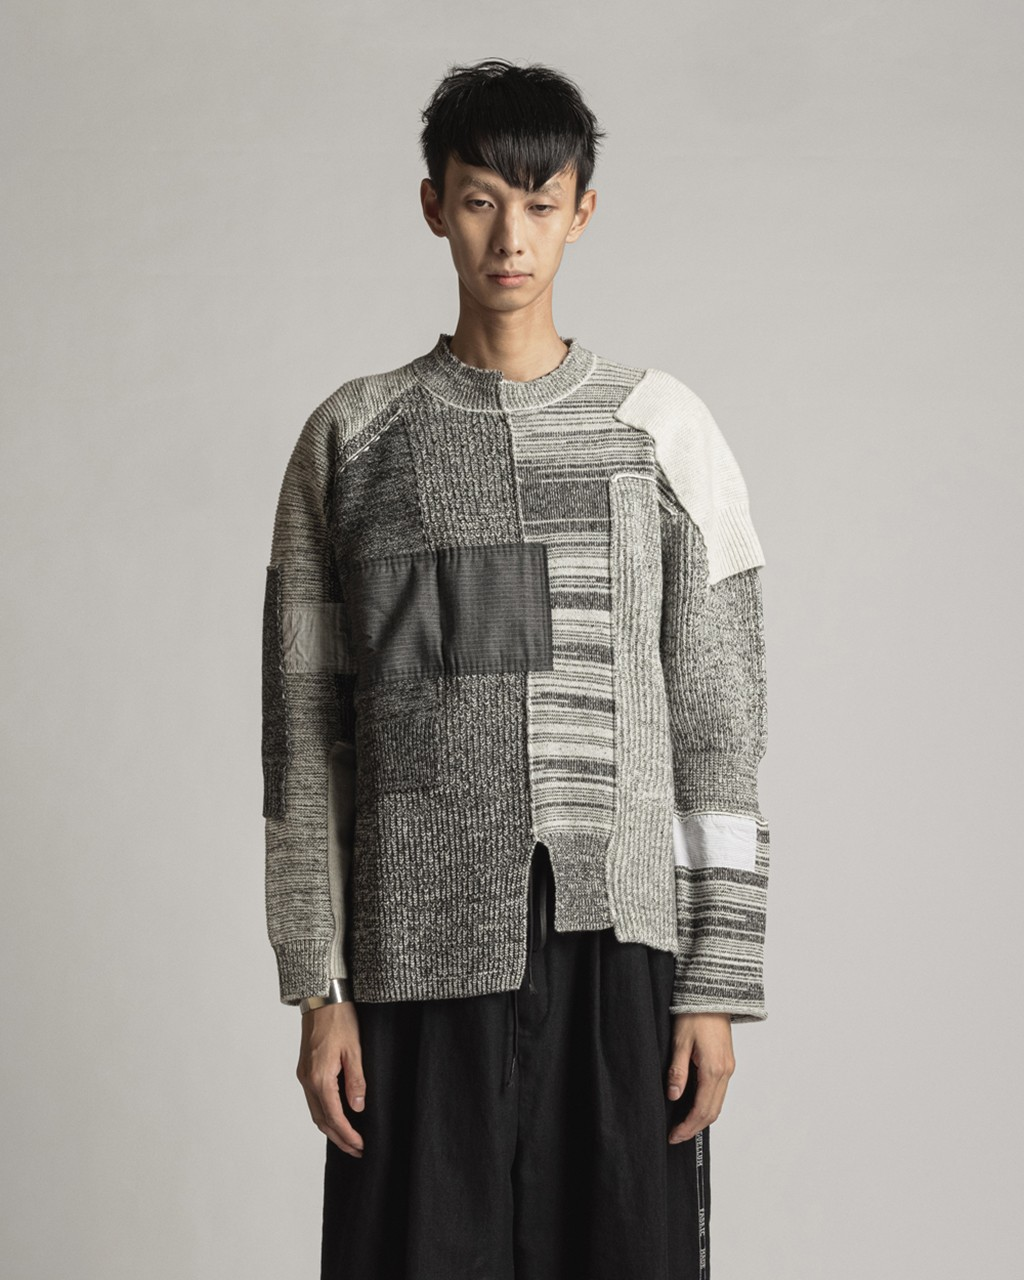 21AW DUE-Ⅲ-034-KNT-GRY Patched Sweater